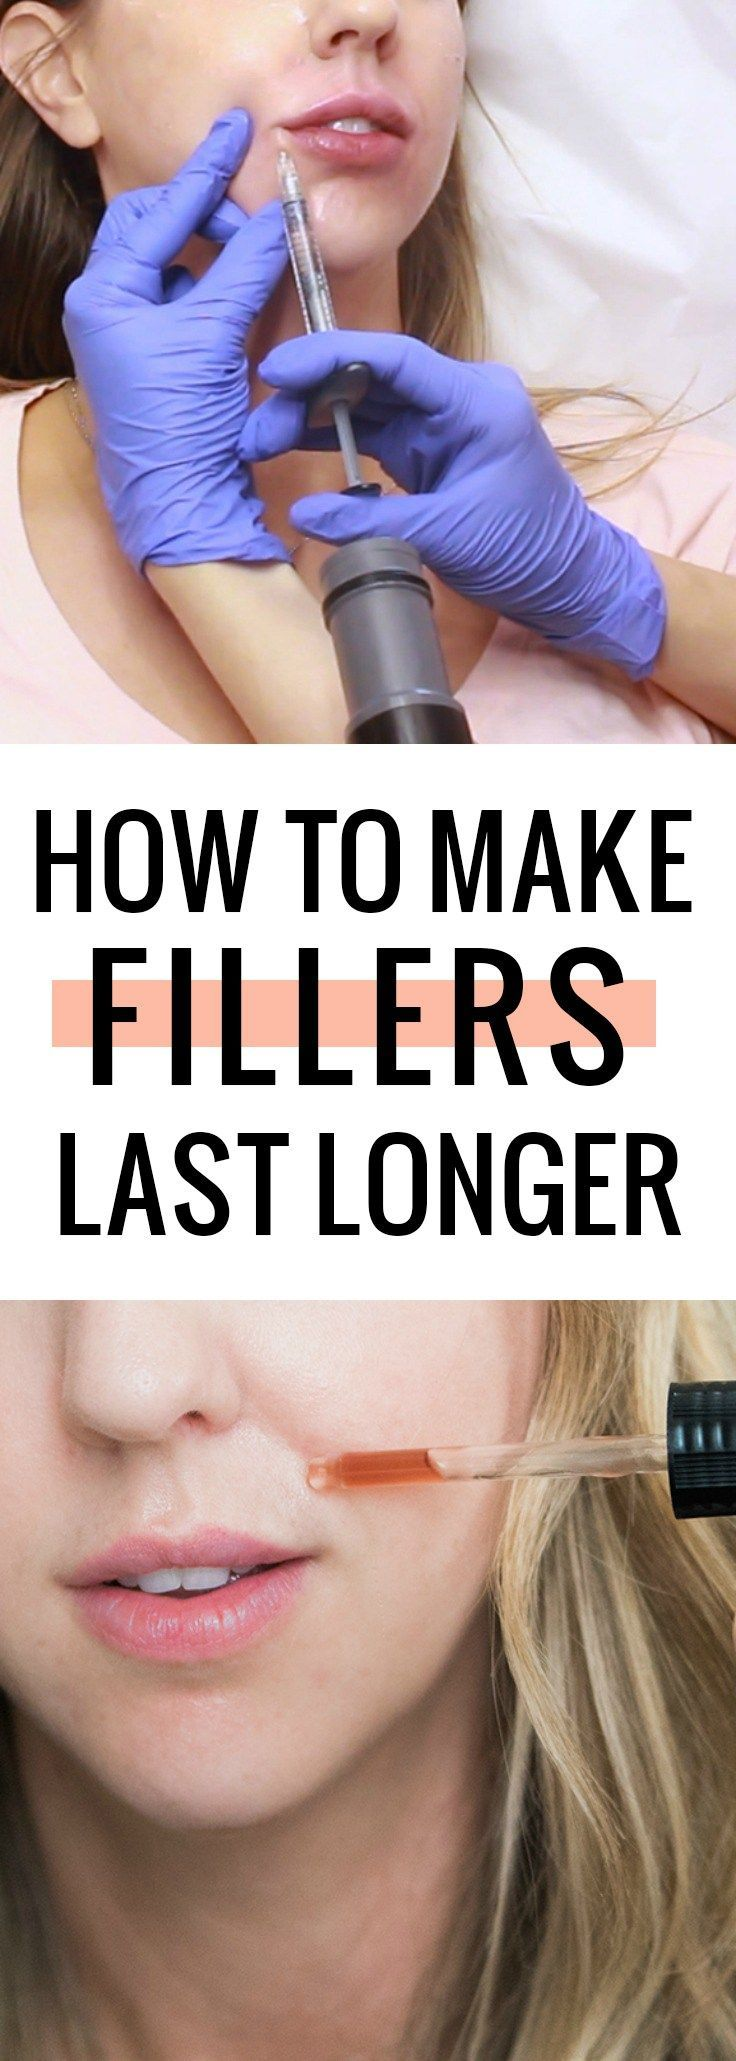 How to make fillers last longer – come see how I maintain my fillers!